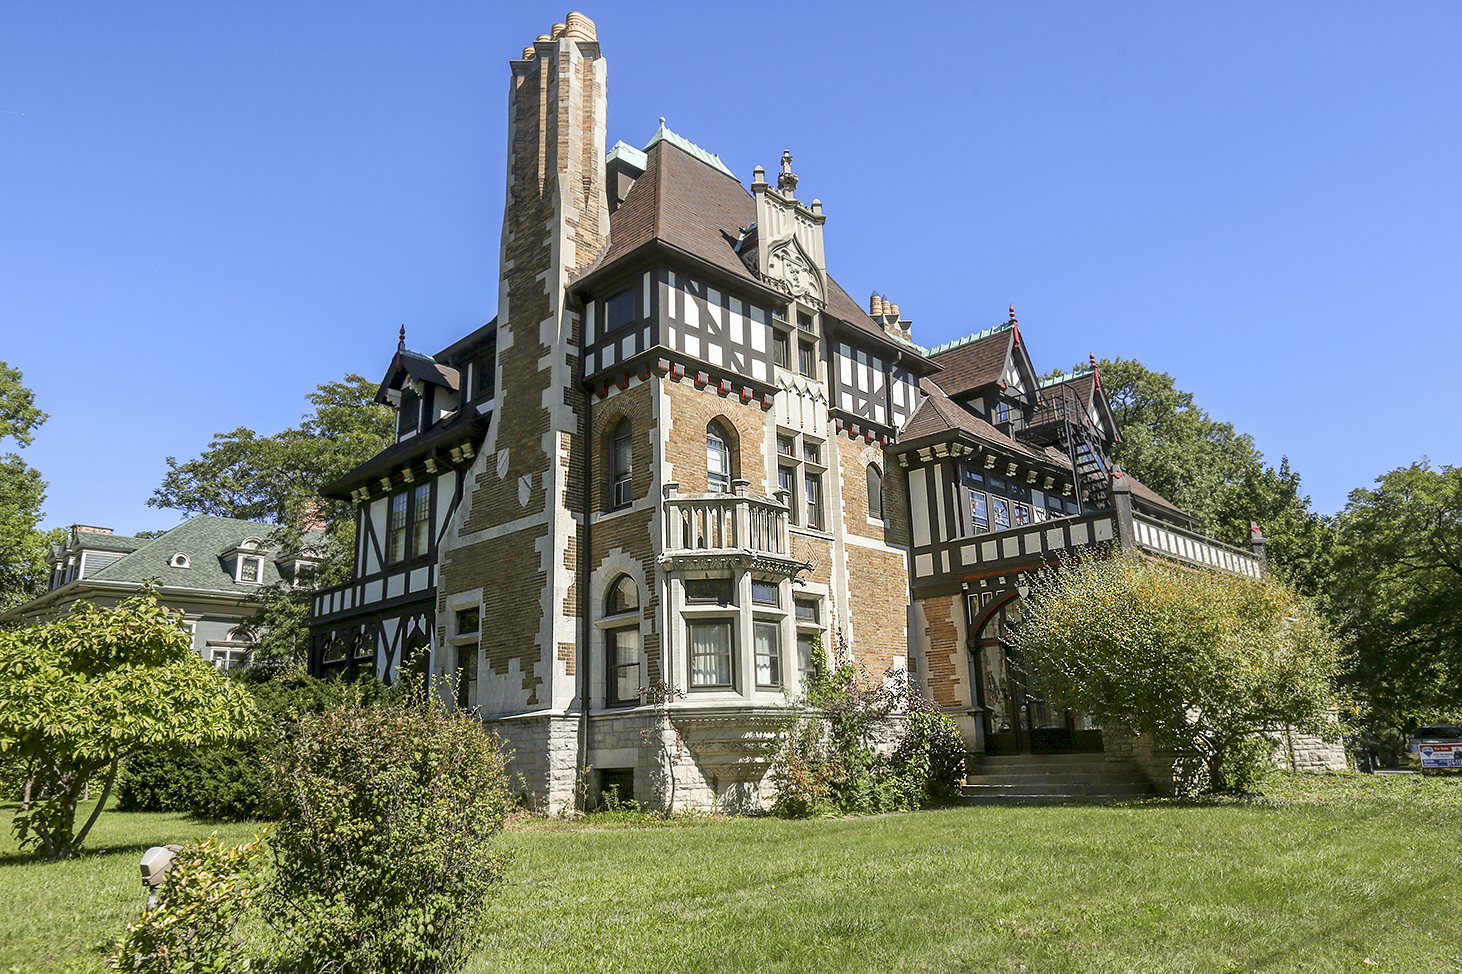 For sale: Toledo mansion with a storied past - The Blade